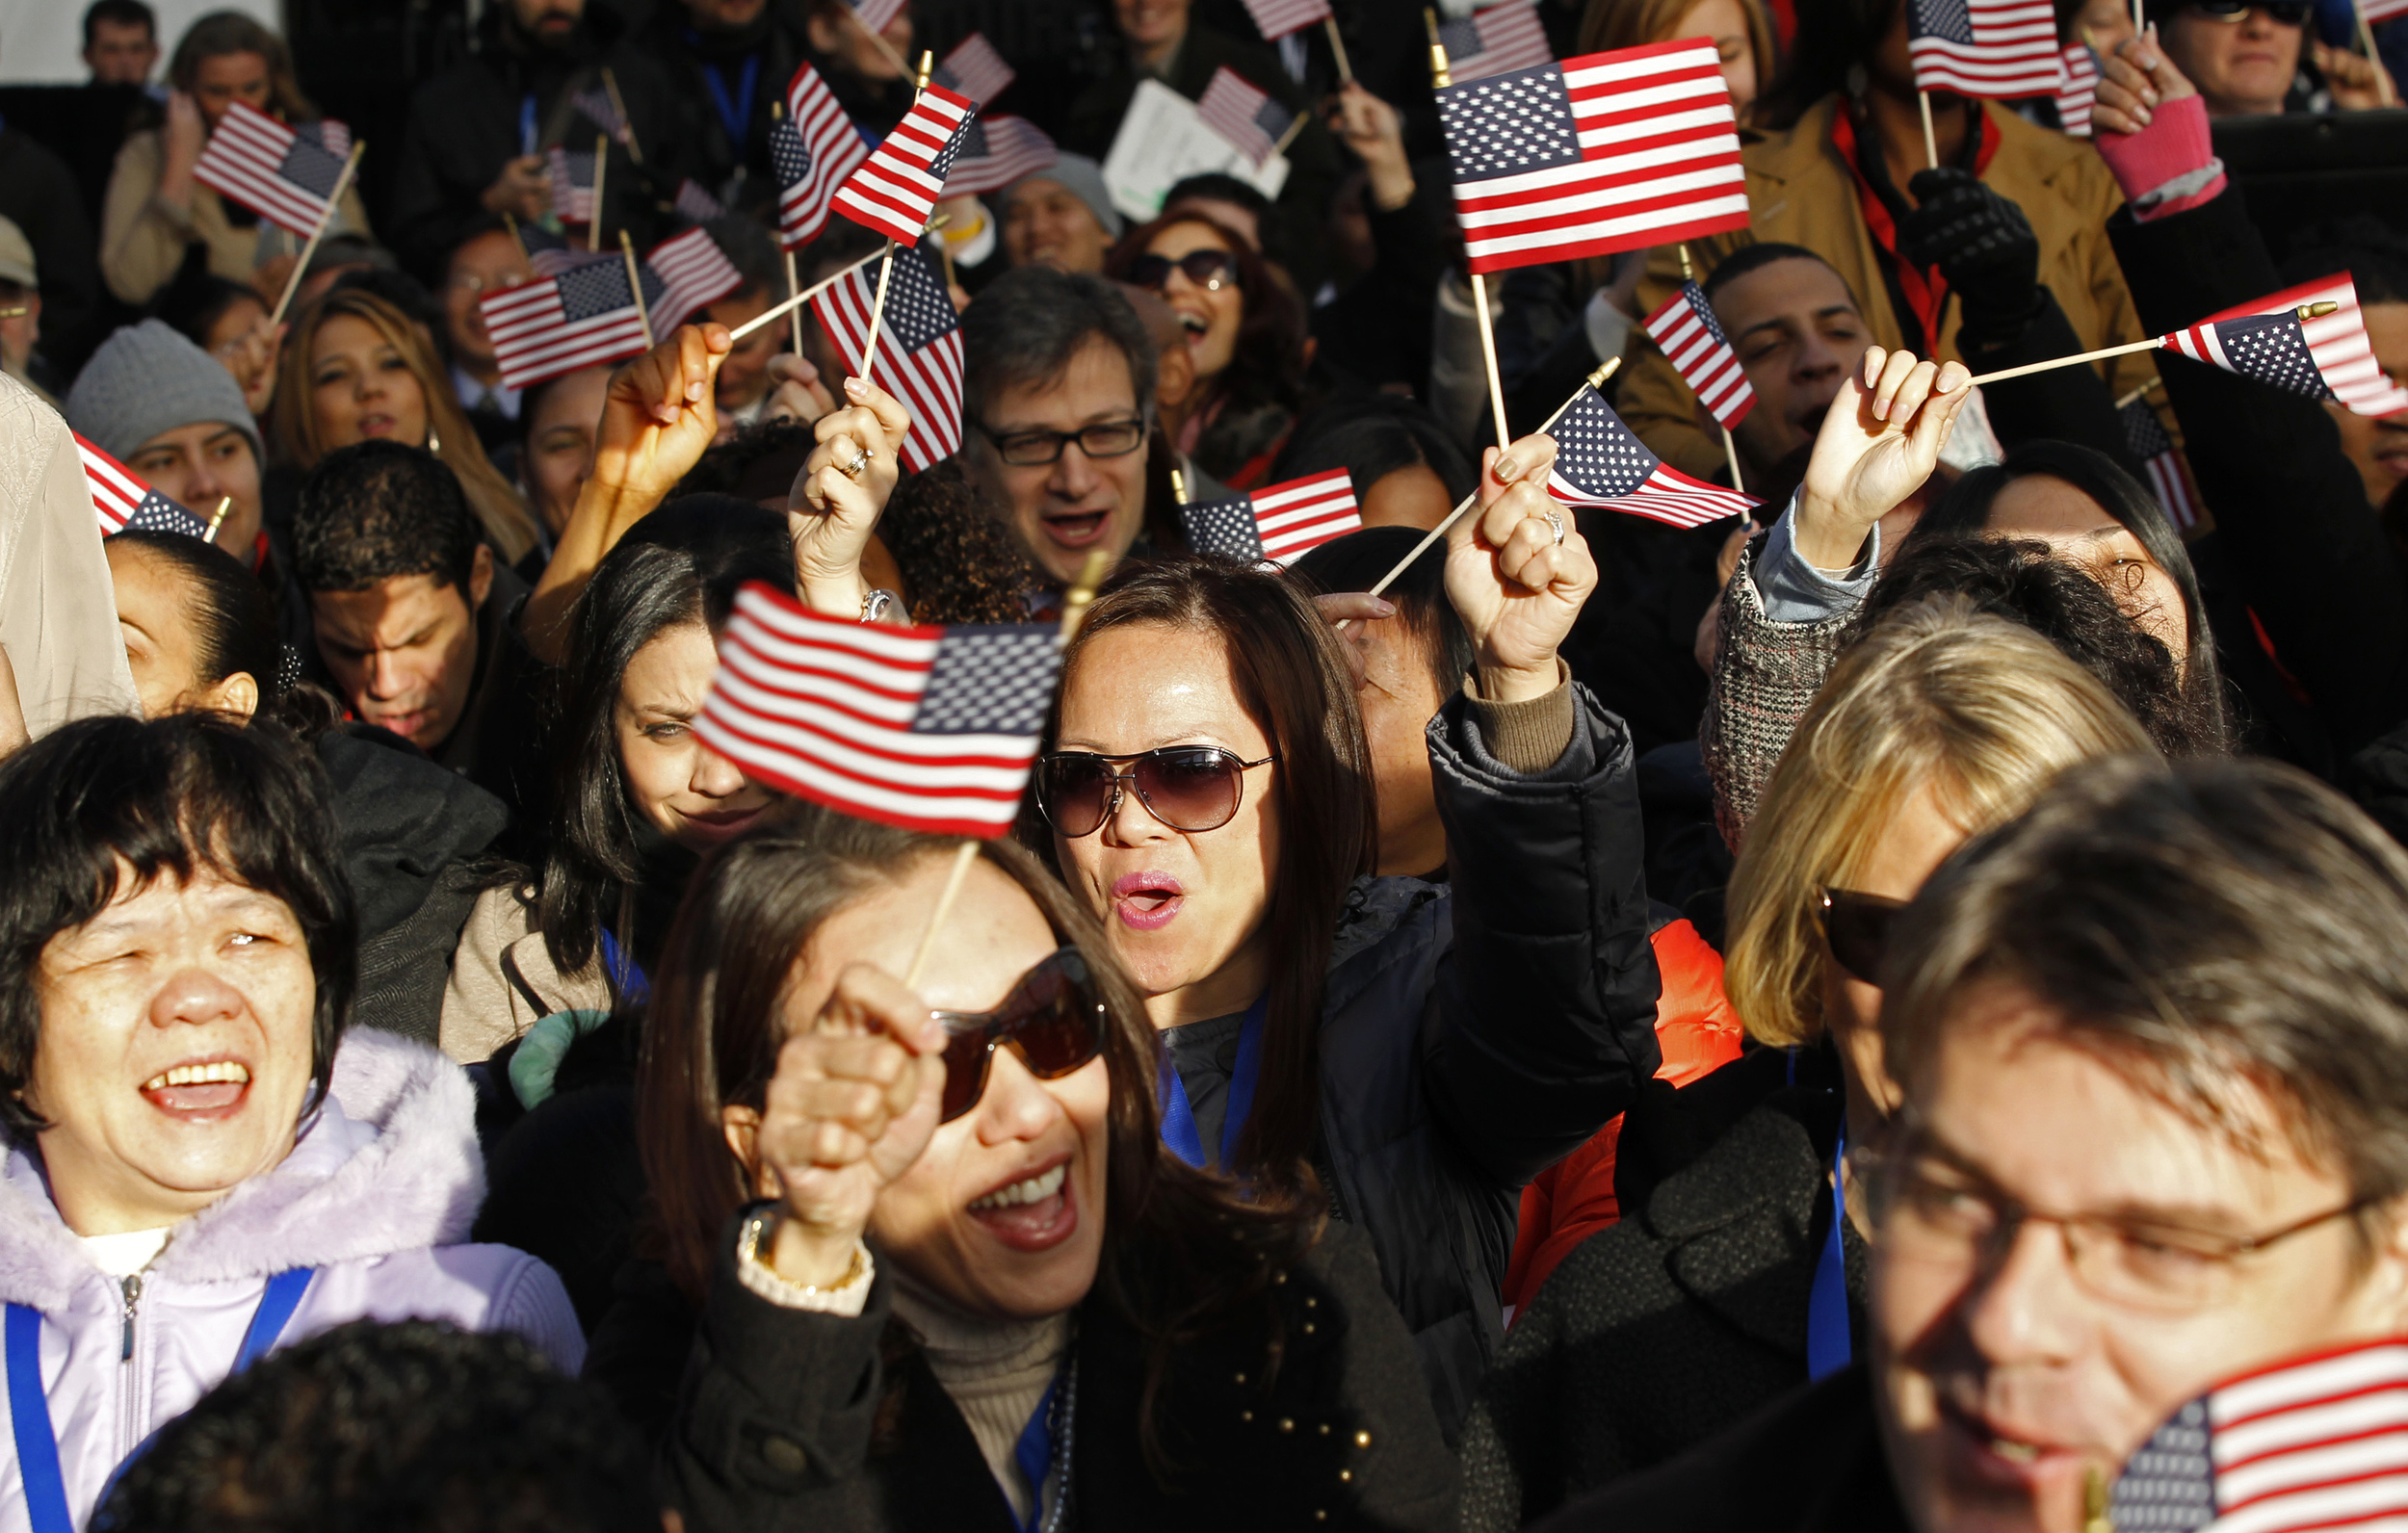 USCIS to Welcome Nearly 20,000 New U.S. Citizens in Naturalization Ceremonies Around Presidents Day